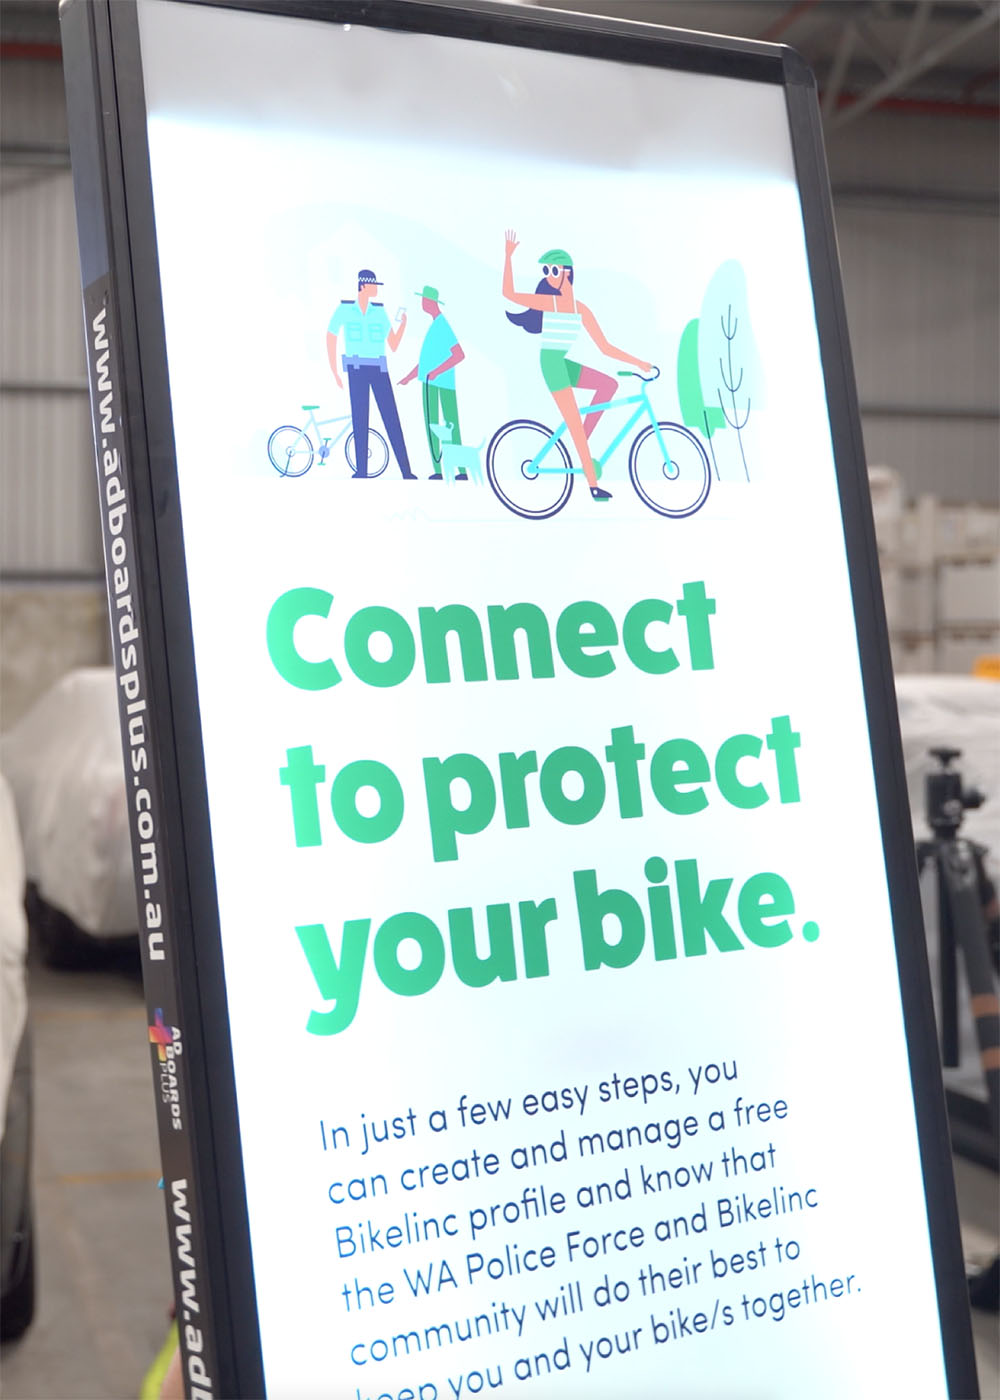 Ad Boards Plus provide in-kind support for Crime Stoppers W.A. and feature at launch of BikeLinc